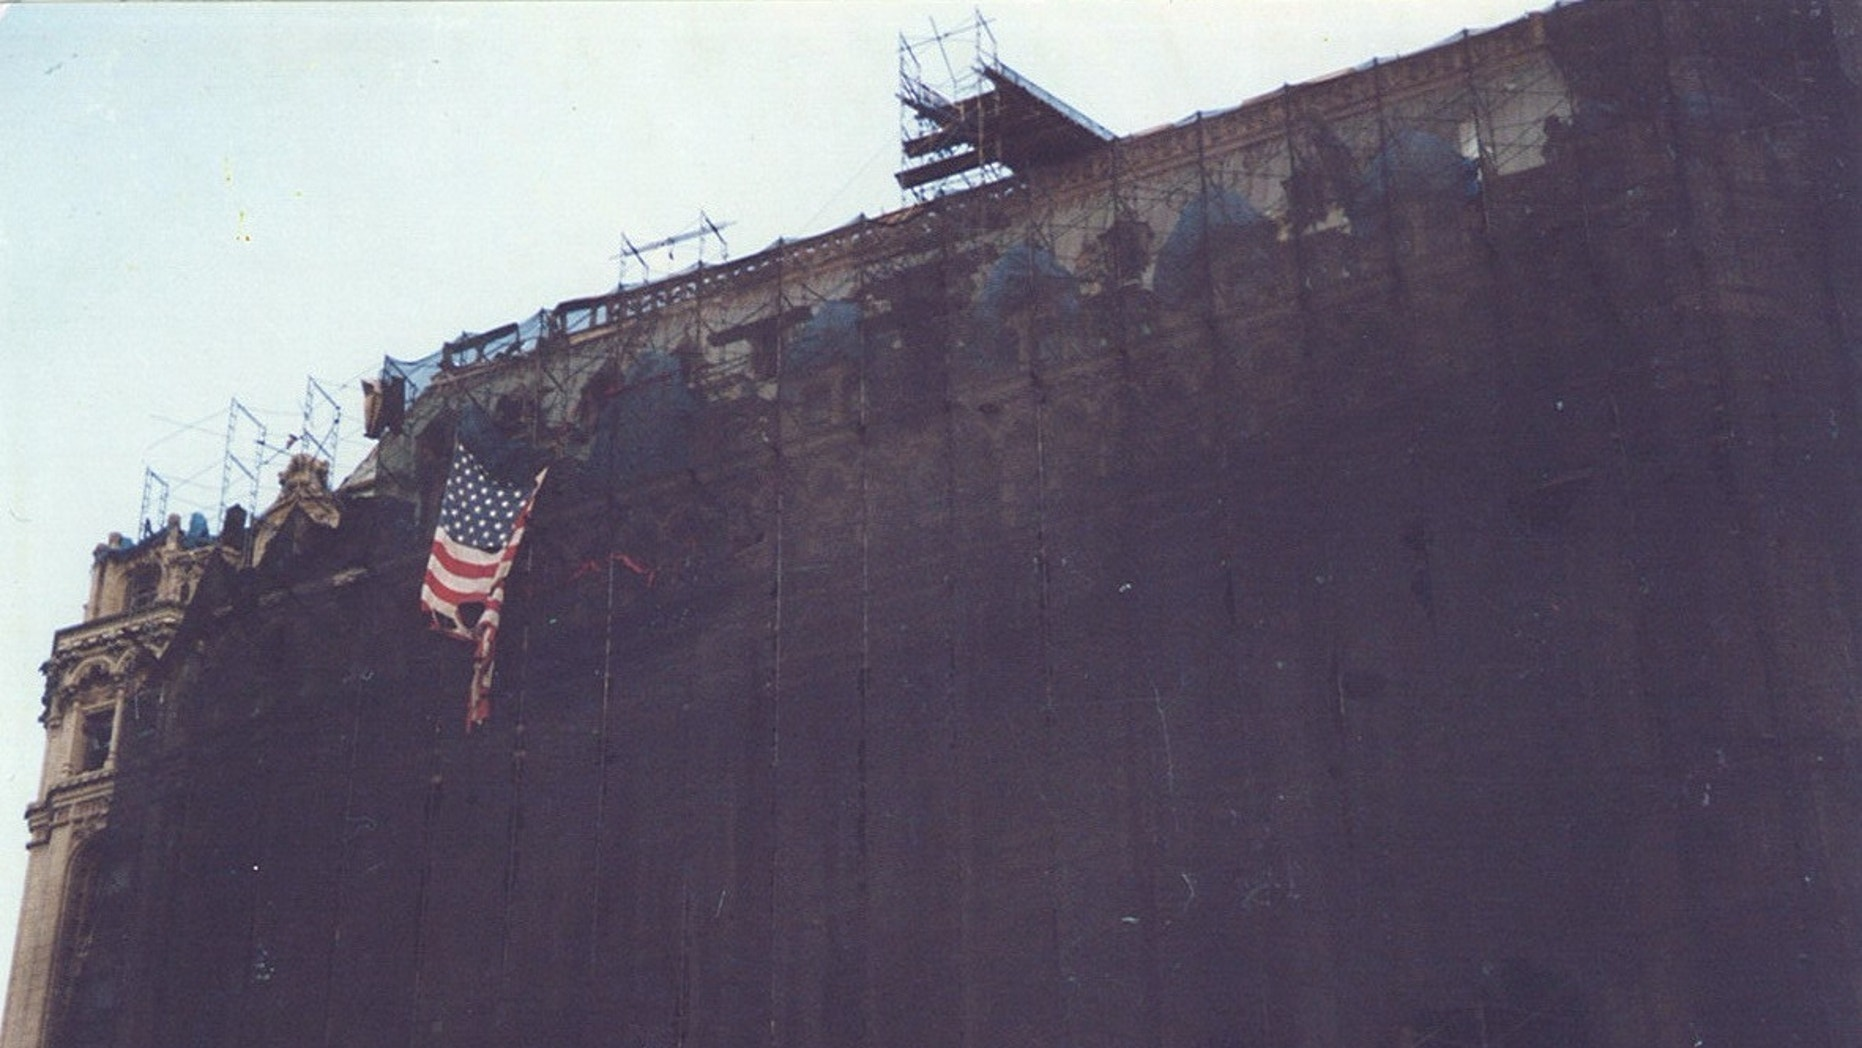 The national 9/11 flag was nearly destroyed by the terror attacks on September 11th 2001 in New York City. In this picture,the flag hangs from the scaffolding of a building just south of Ground Zero.